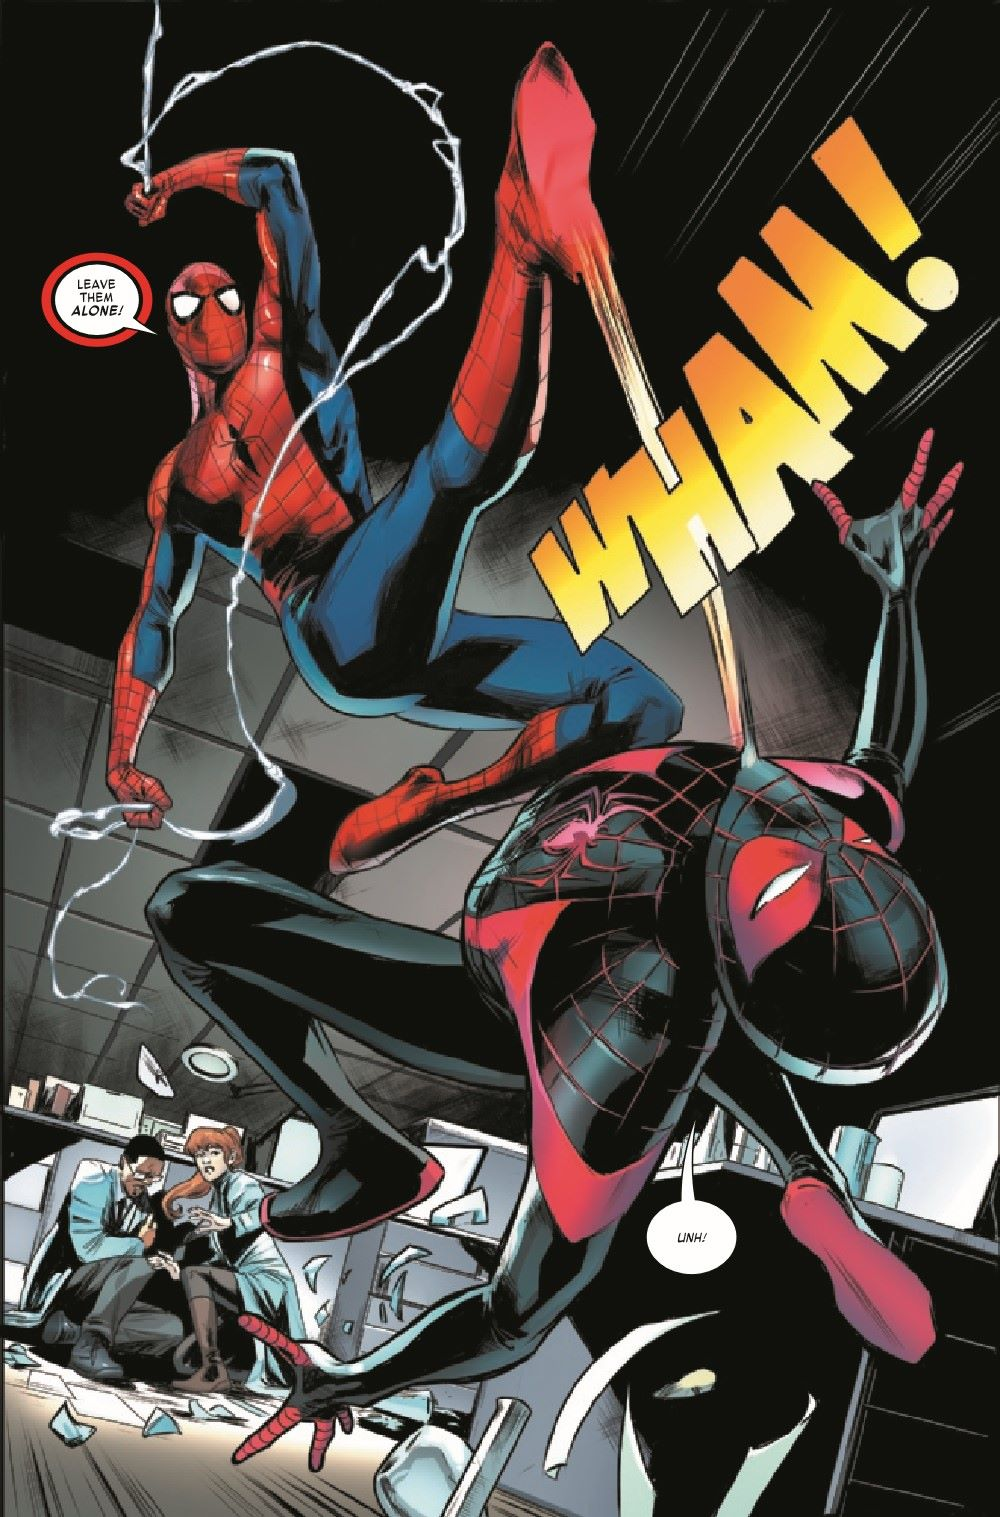 MMSM2018025_Preview-6 ComicList Previews: MILES MORALES SPIDER-MAN #25